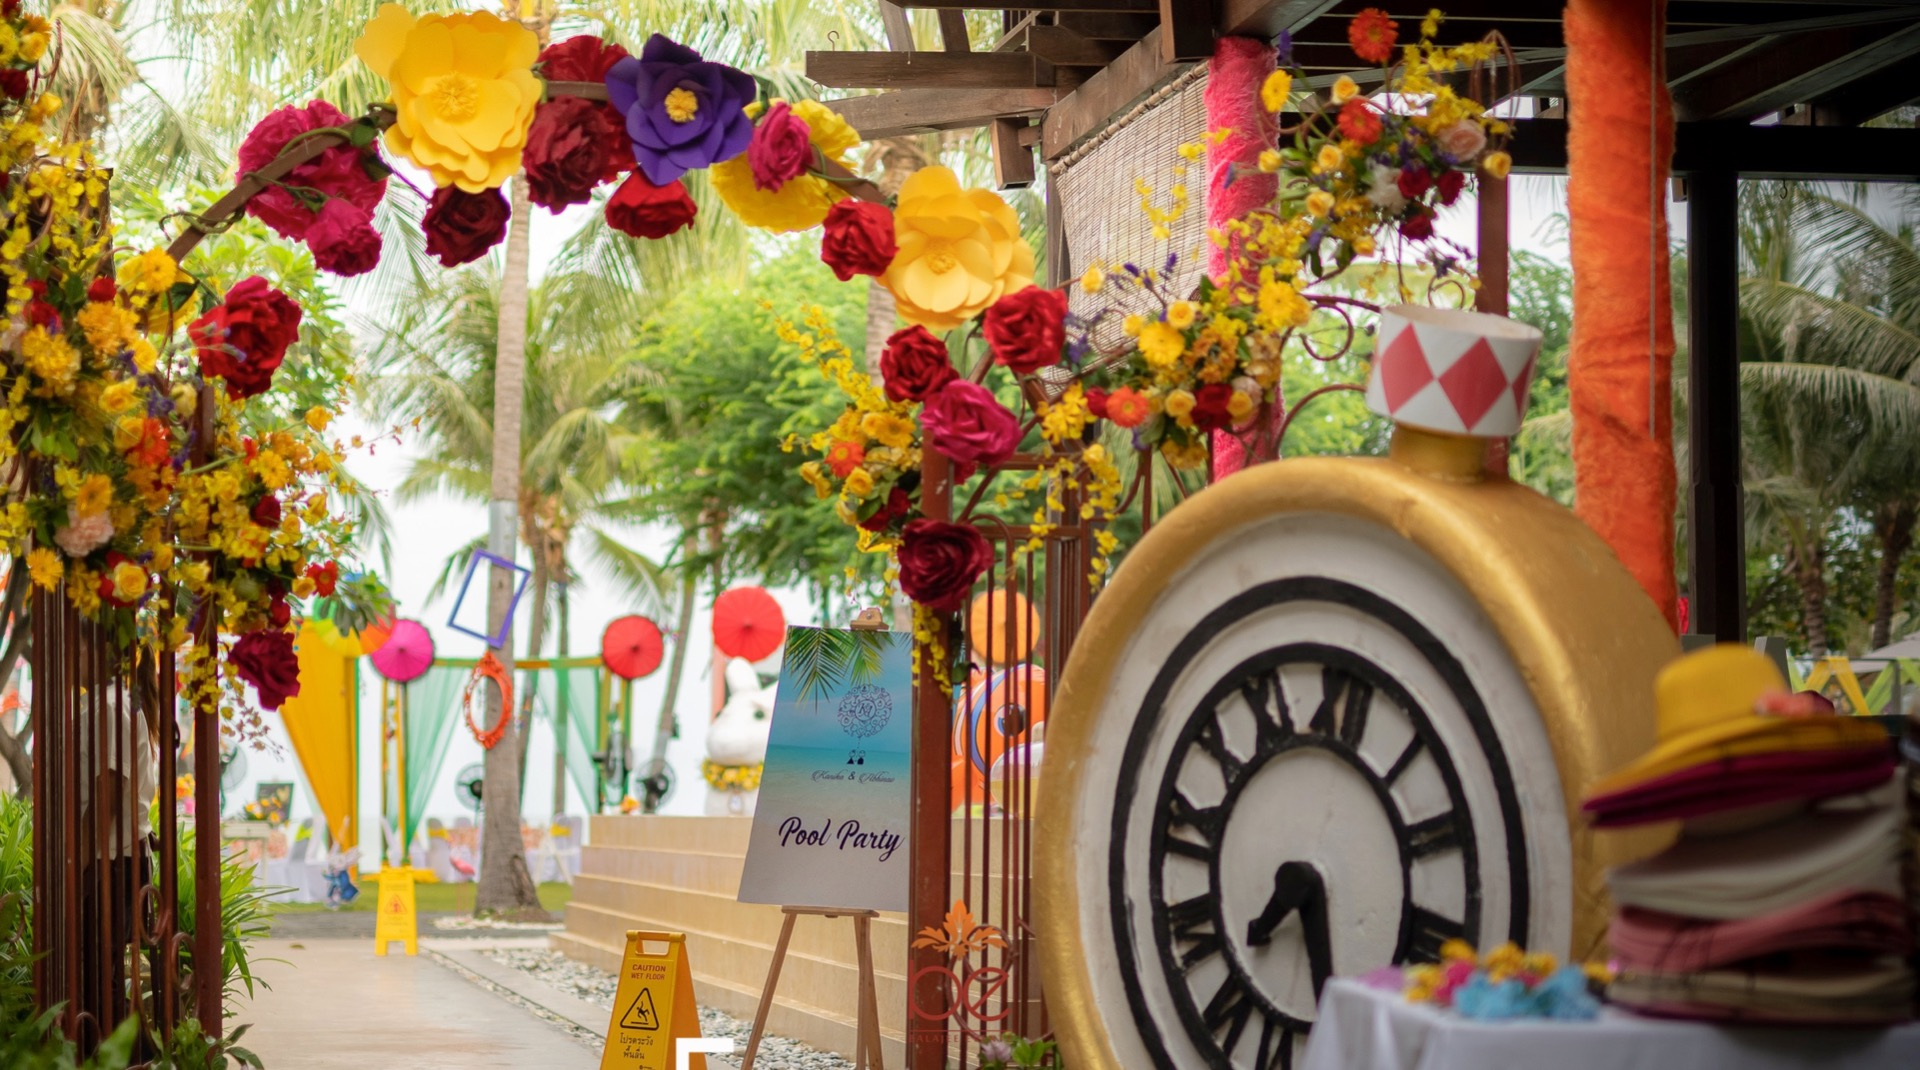 Floral Pool Party Entrance Decor with Big Paper Flowers